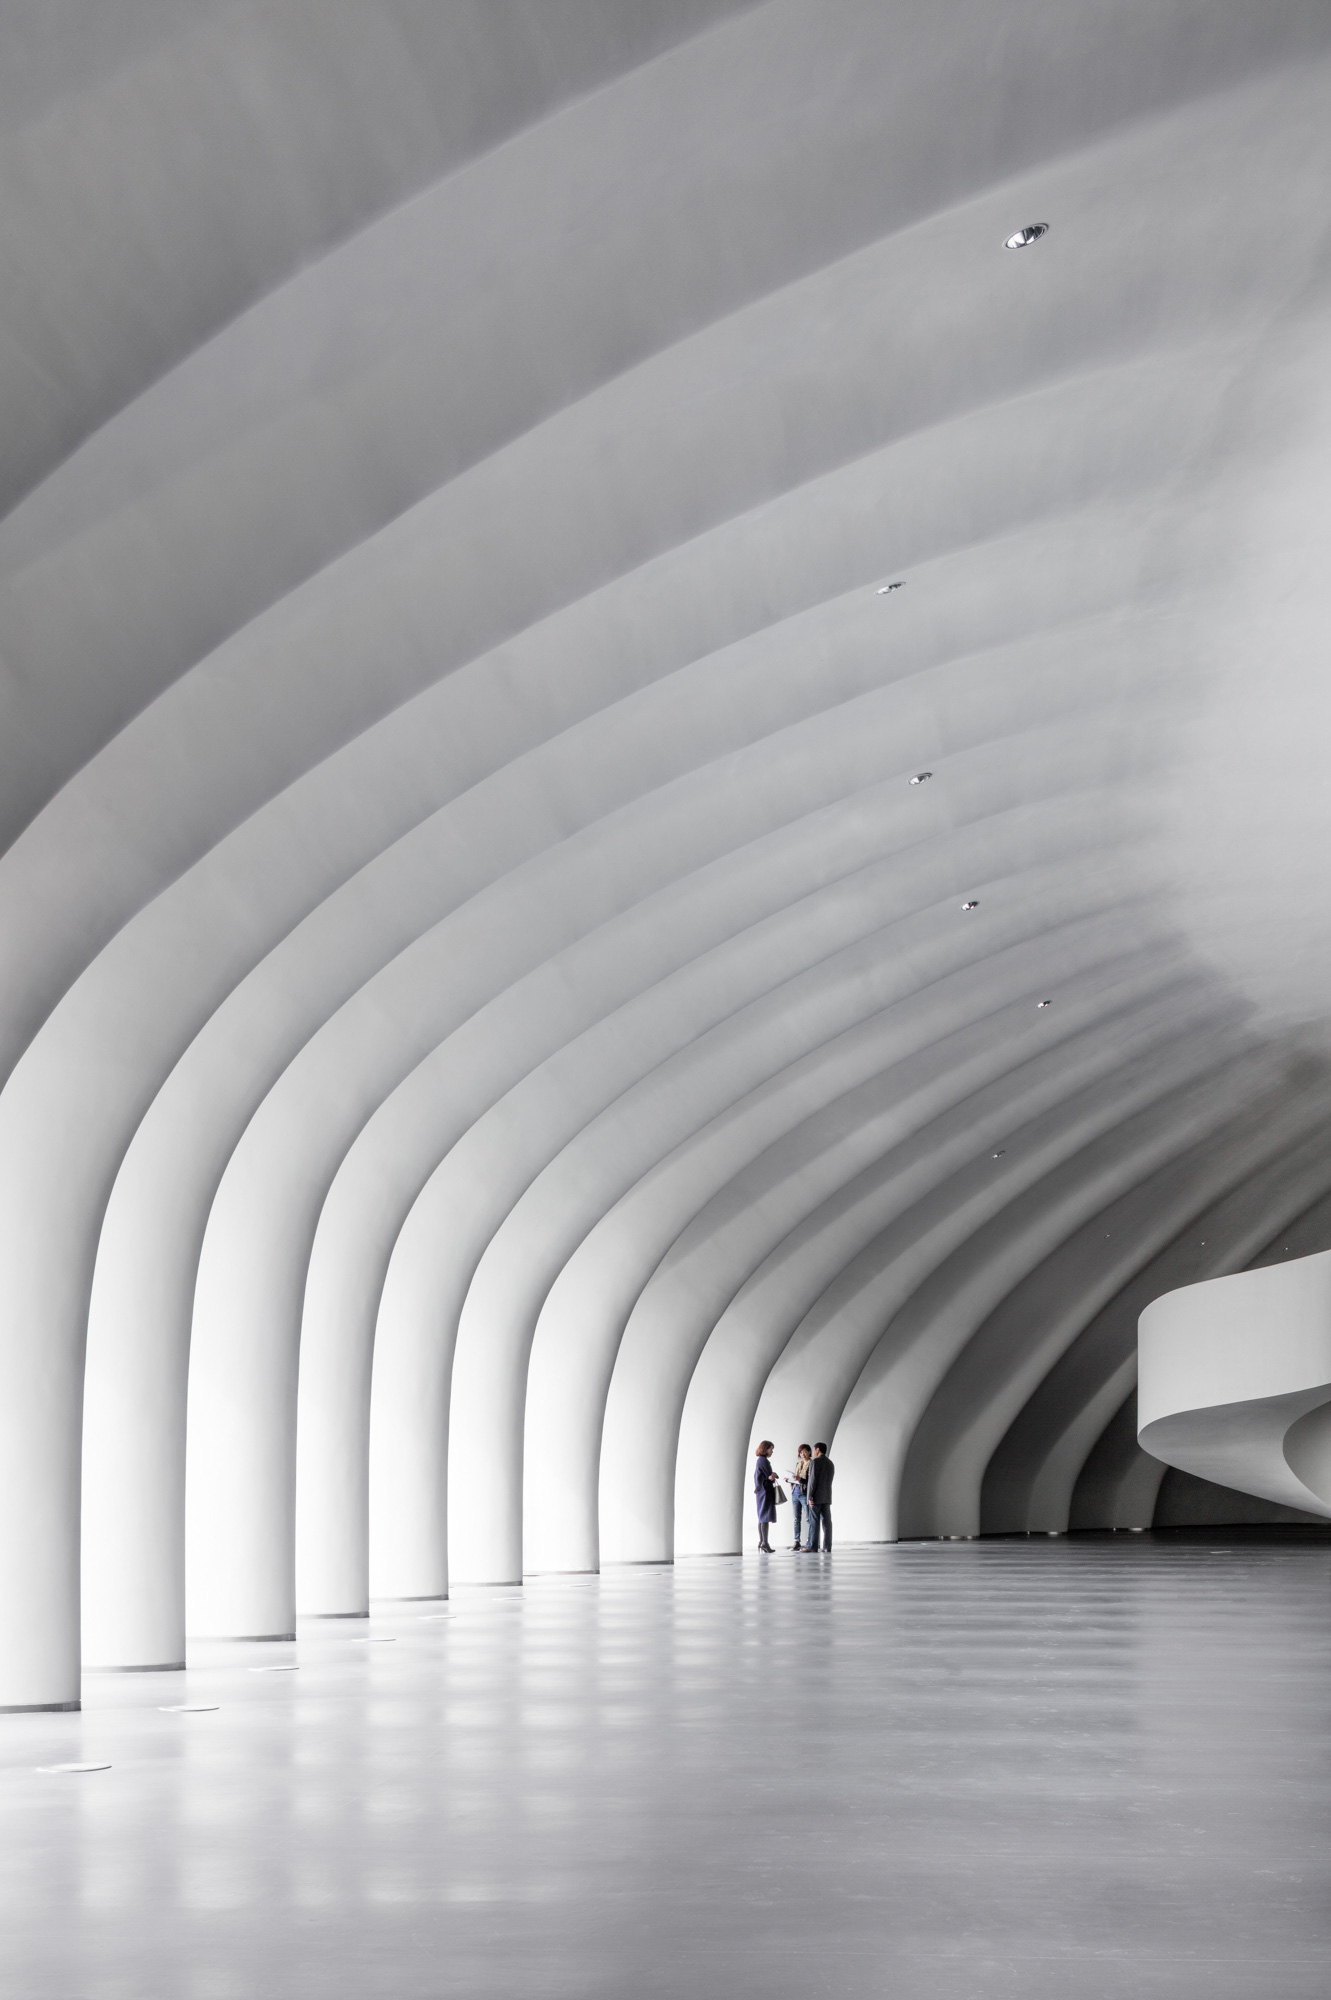 White ribbed ceiling in this impressive architecture